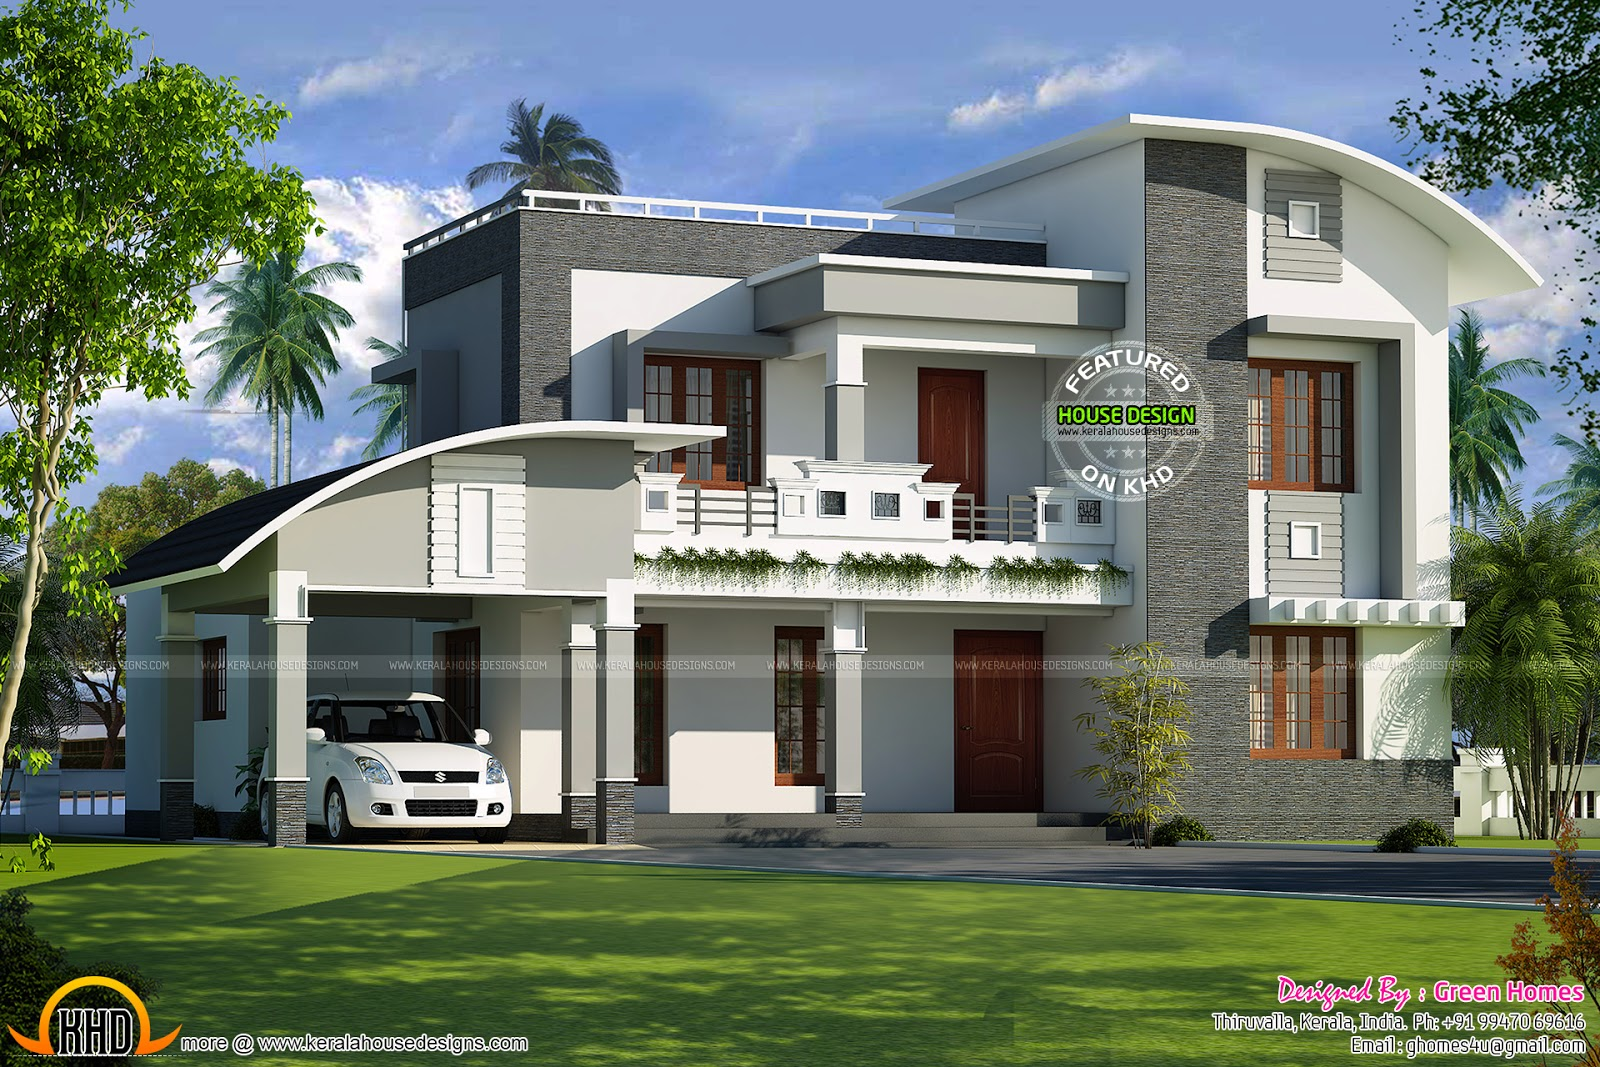 Curved roof flat roof house plan kerala home design and for Curved roof house plans